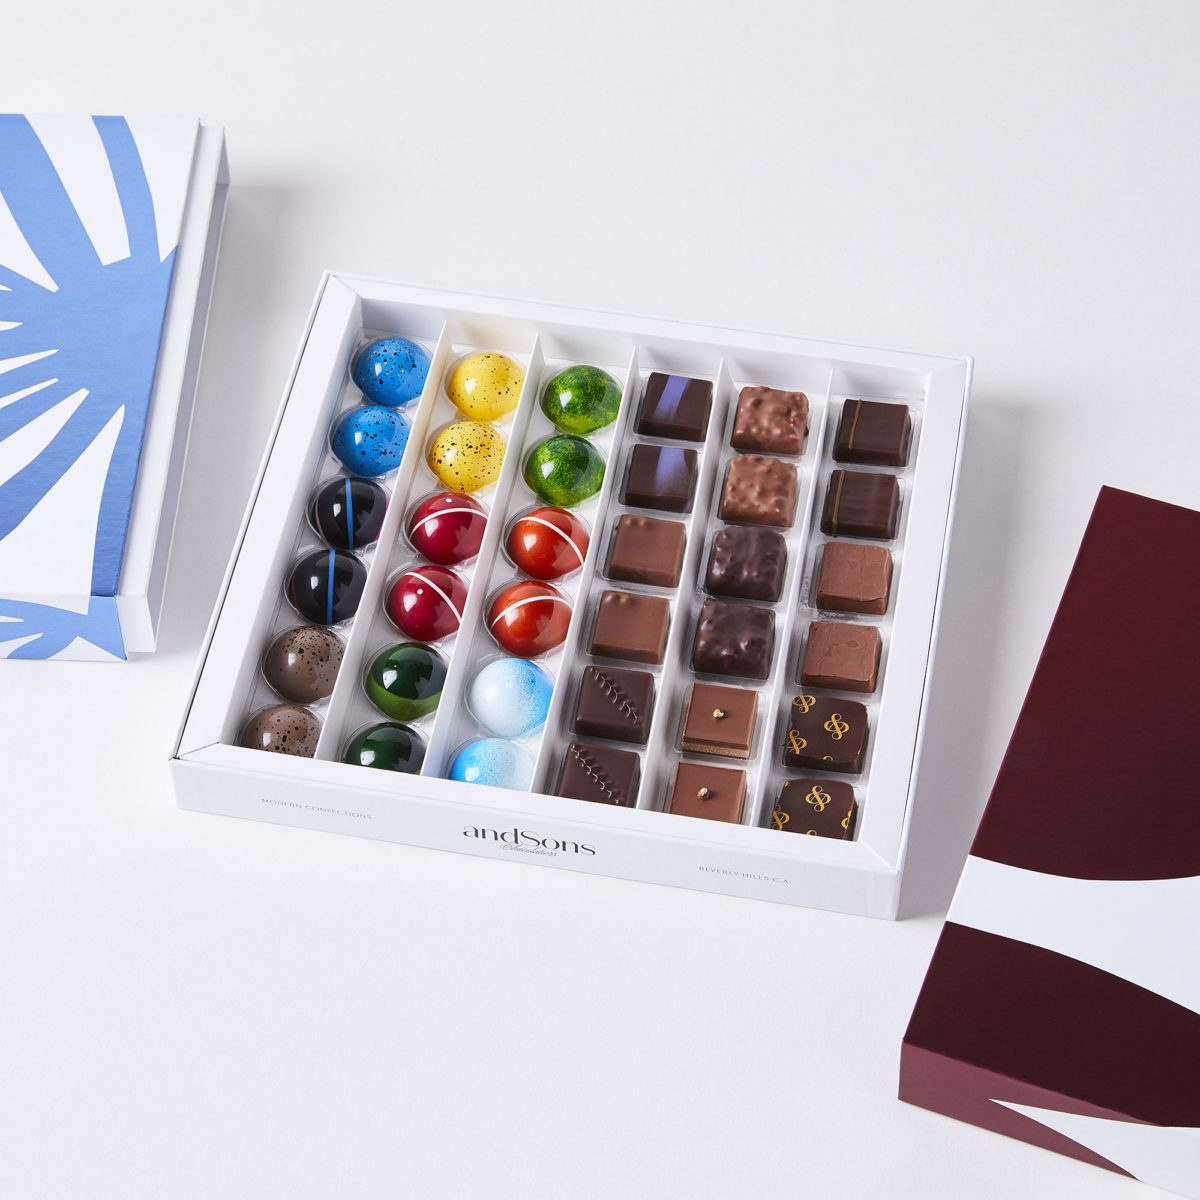 35 romantic gifts that can turn into romantic date nights | parenting questions | mamas uncut 2973261e 5462 4af7 8813 99b6d109af4e 2020 0914 andsons chocolatiers signature collection box 36 piece detail silo ty mecham